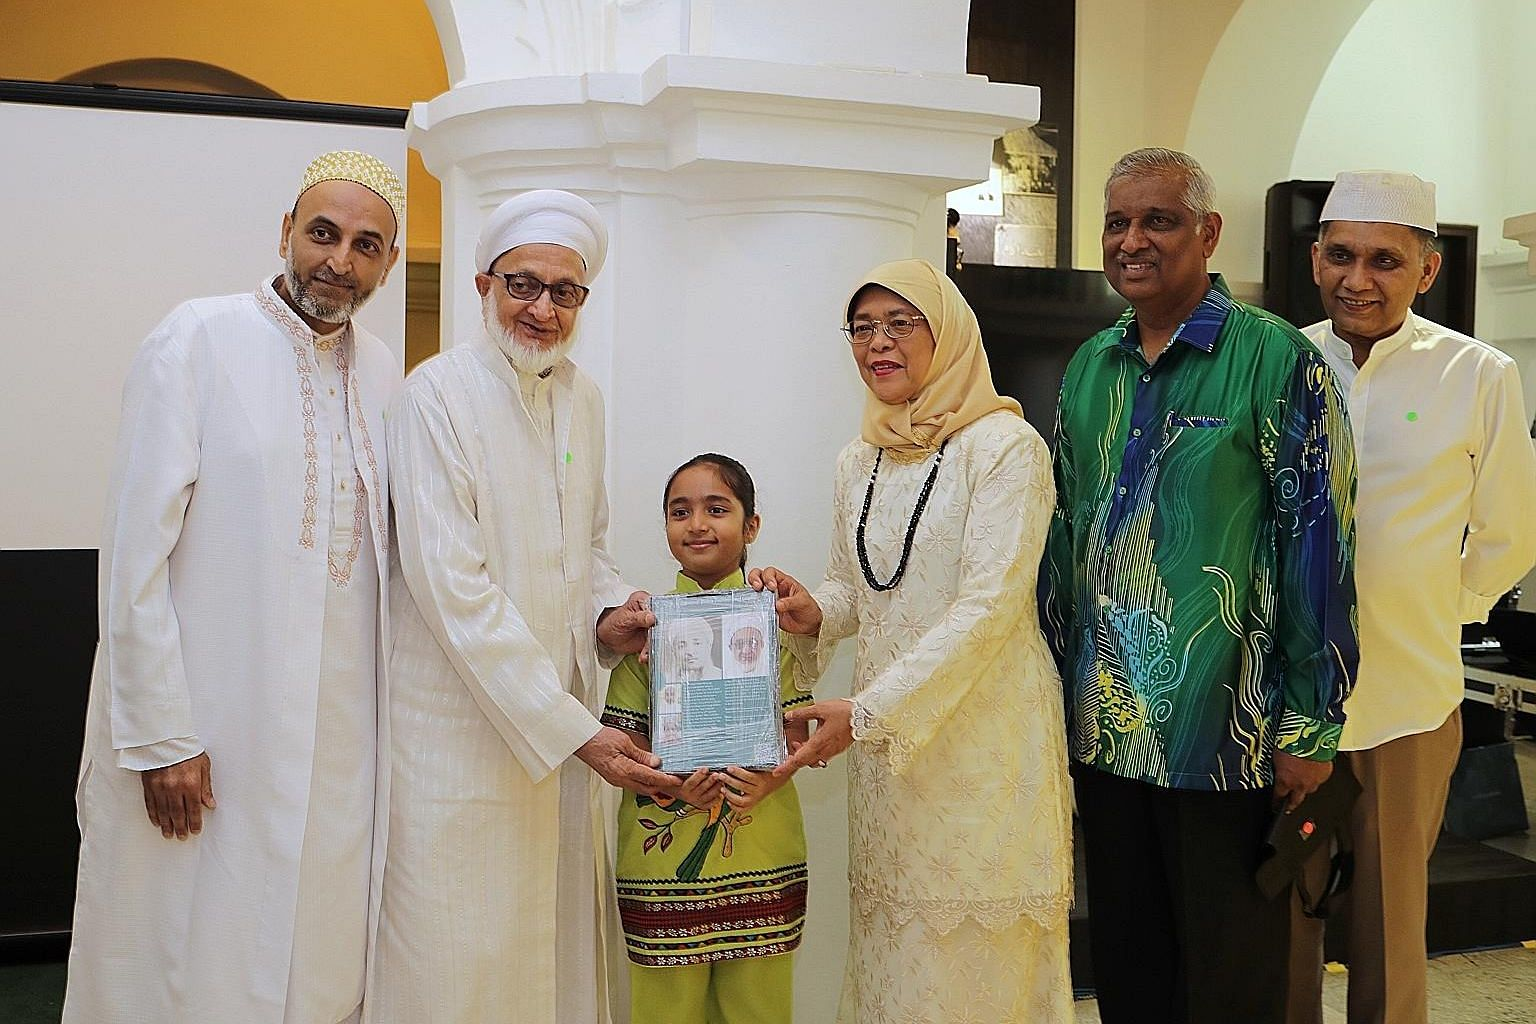 From left: Mr Shaikh Tayebali Khumusi, Mr Mazher Tayeb, Rashida Khumusi, President Halimah Yacob, Mr Naseer Ghani, secretary of the Nagore Dargah Indian Muslim Heritage Centre, and Mr Abdul Jaleel, the centre's chairman, at yesterday's event thanking